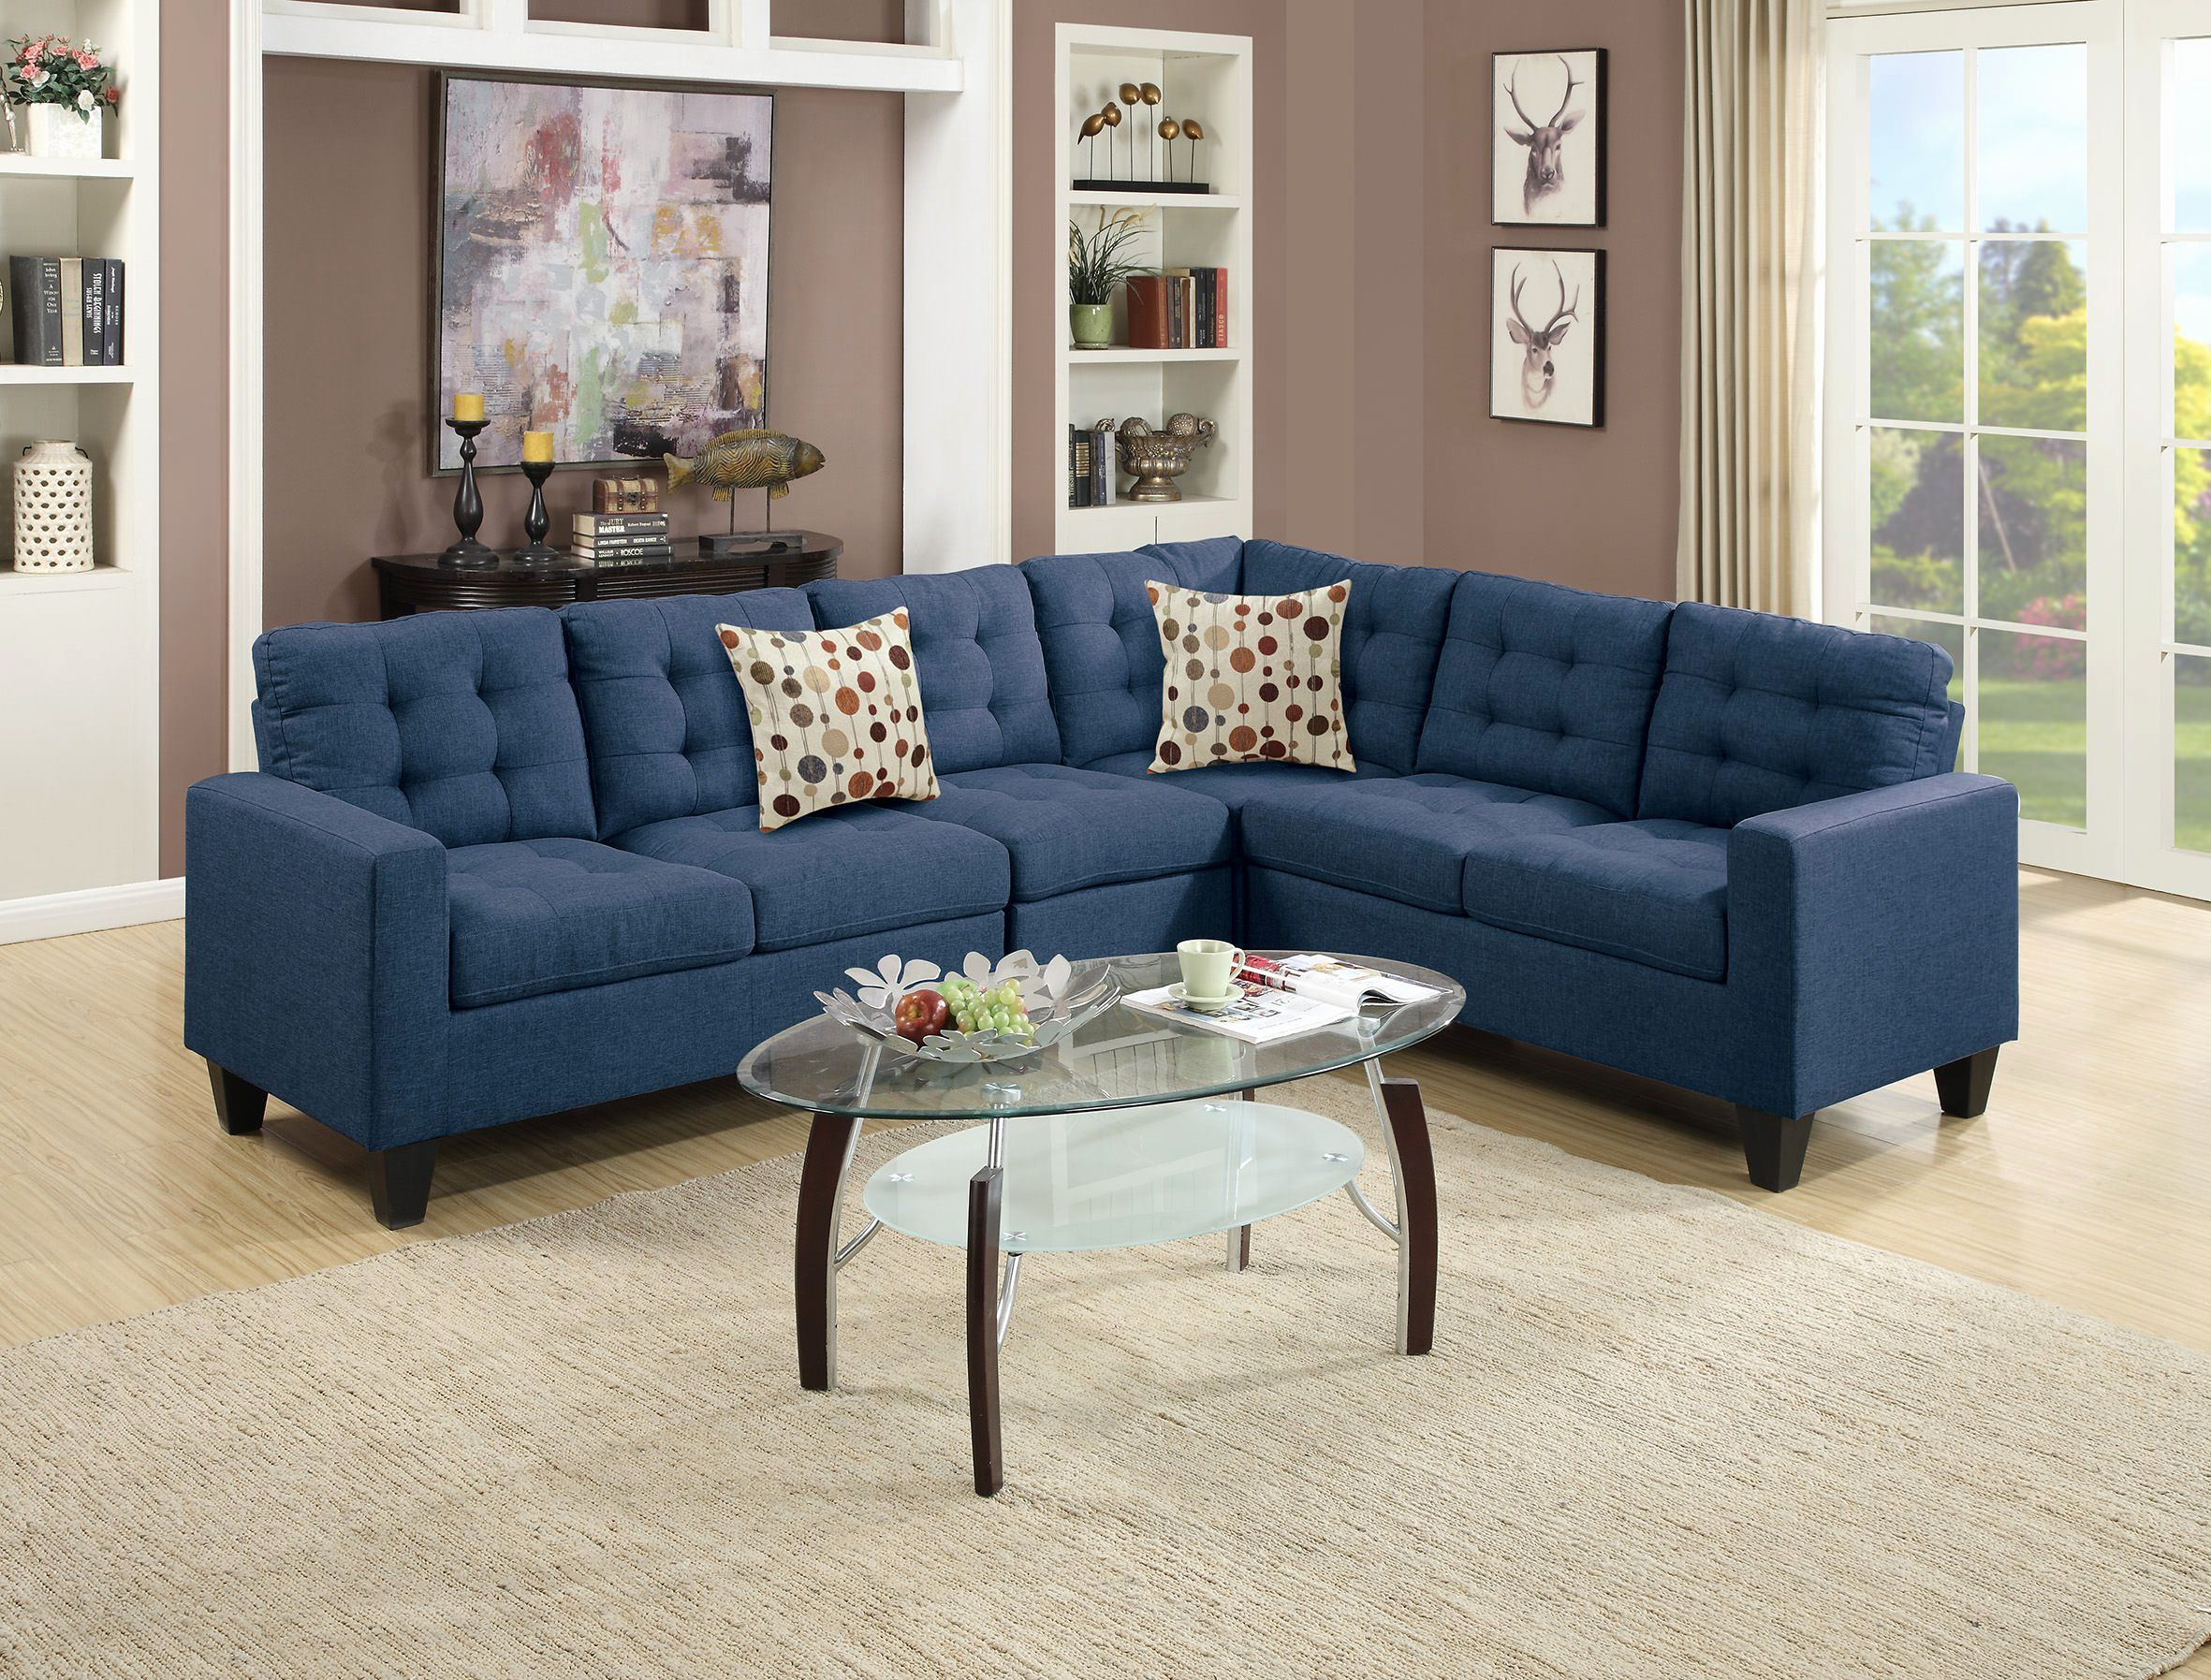 Navy Microfiber Sofa Can You Clean Leather With Steam Cleaner Alema Glam By